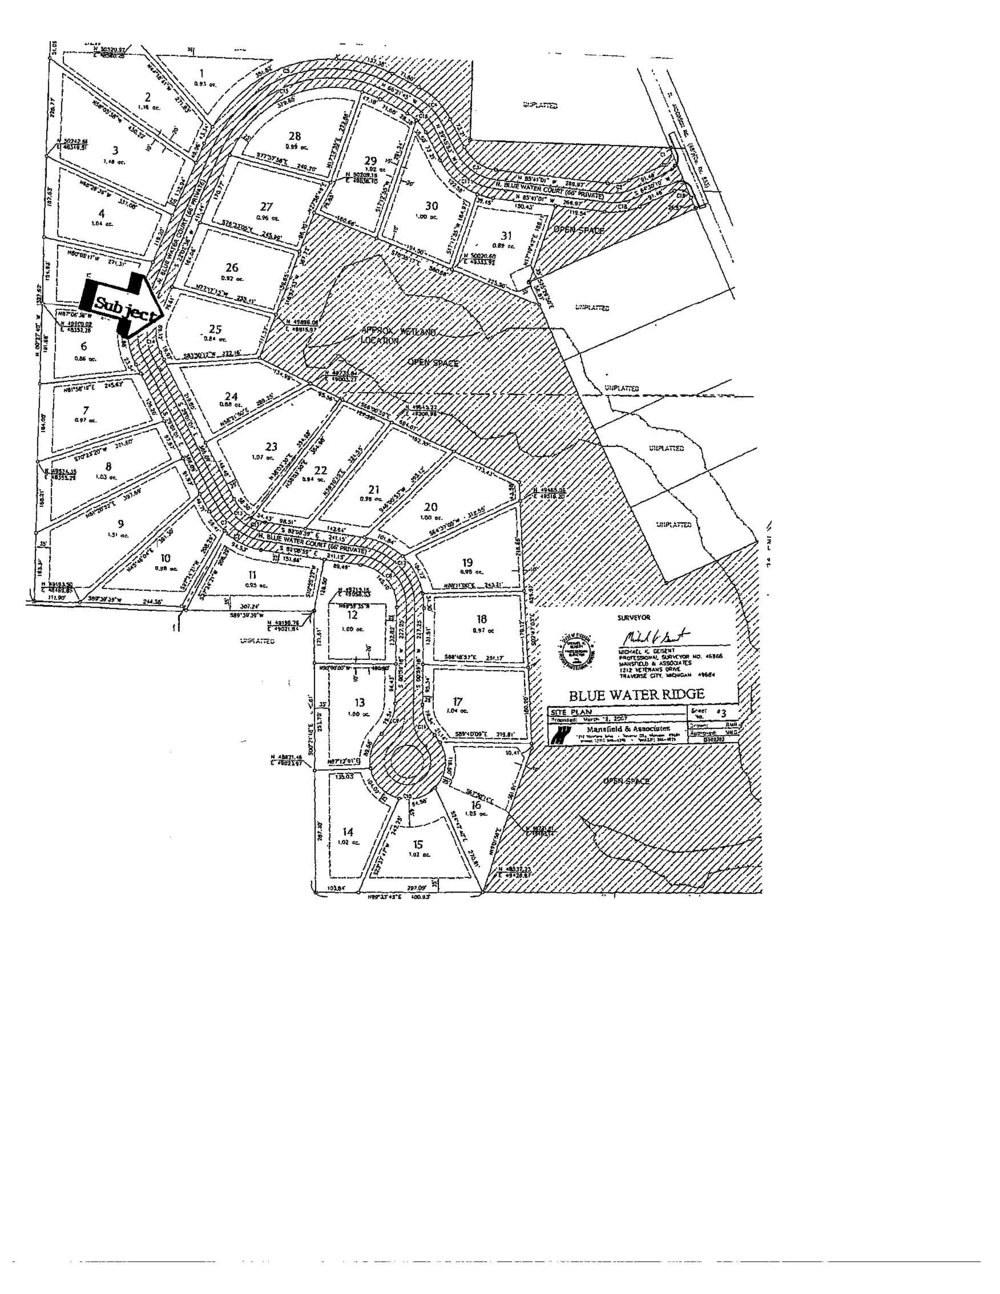 1930 N Blue Water Ct, Suttons Bay, Leelanau County, Vacant Waterview Lot For Sale By Oltersdorf Realty LLC - Marketing Packet (5).jpg